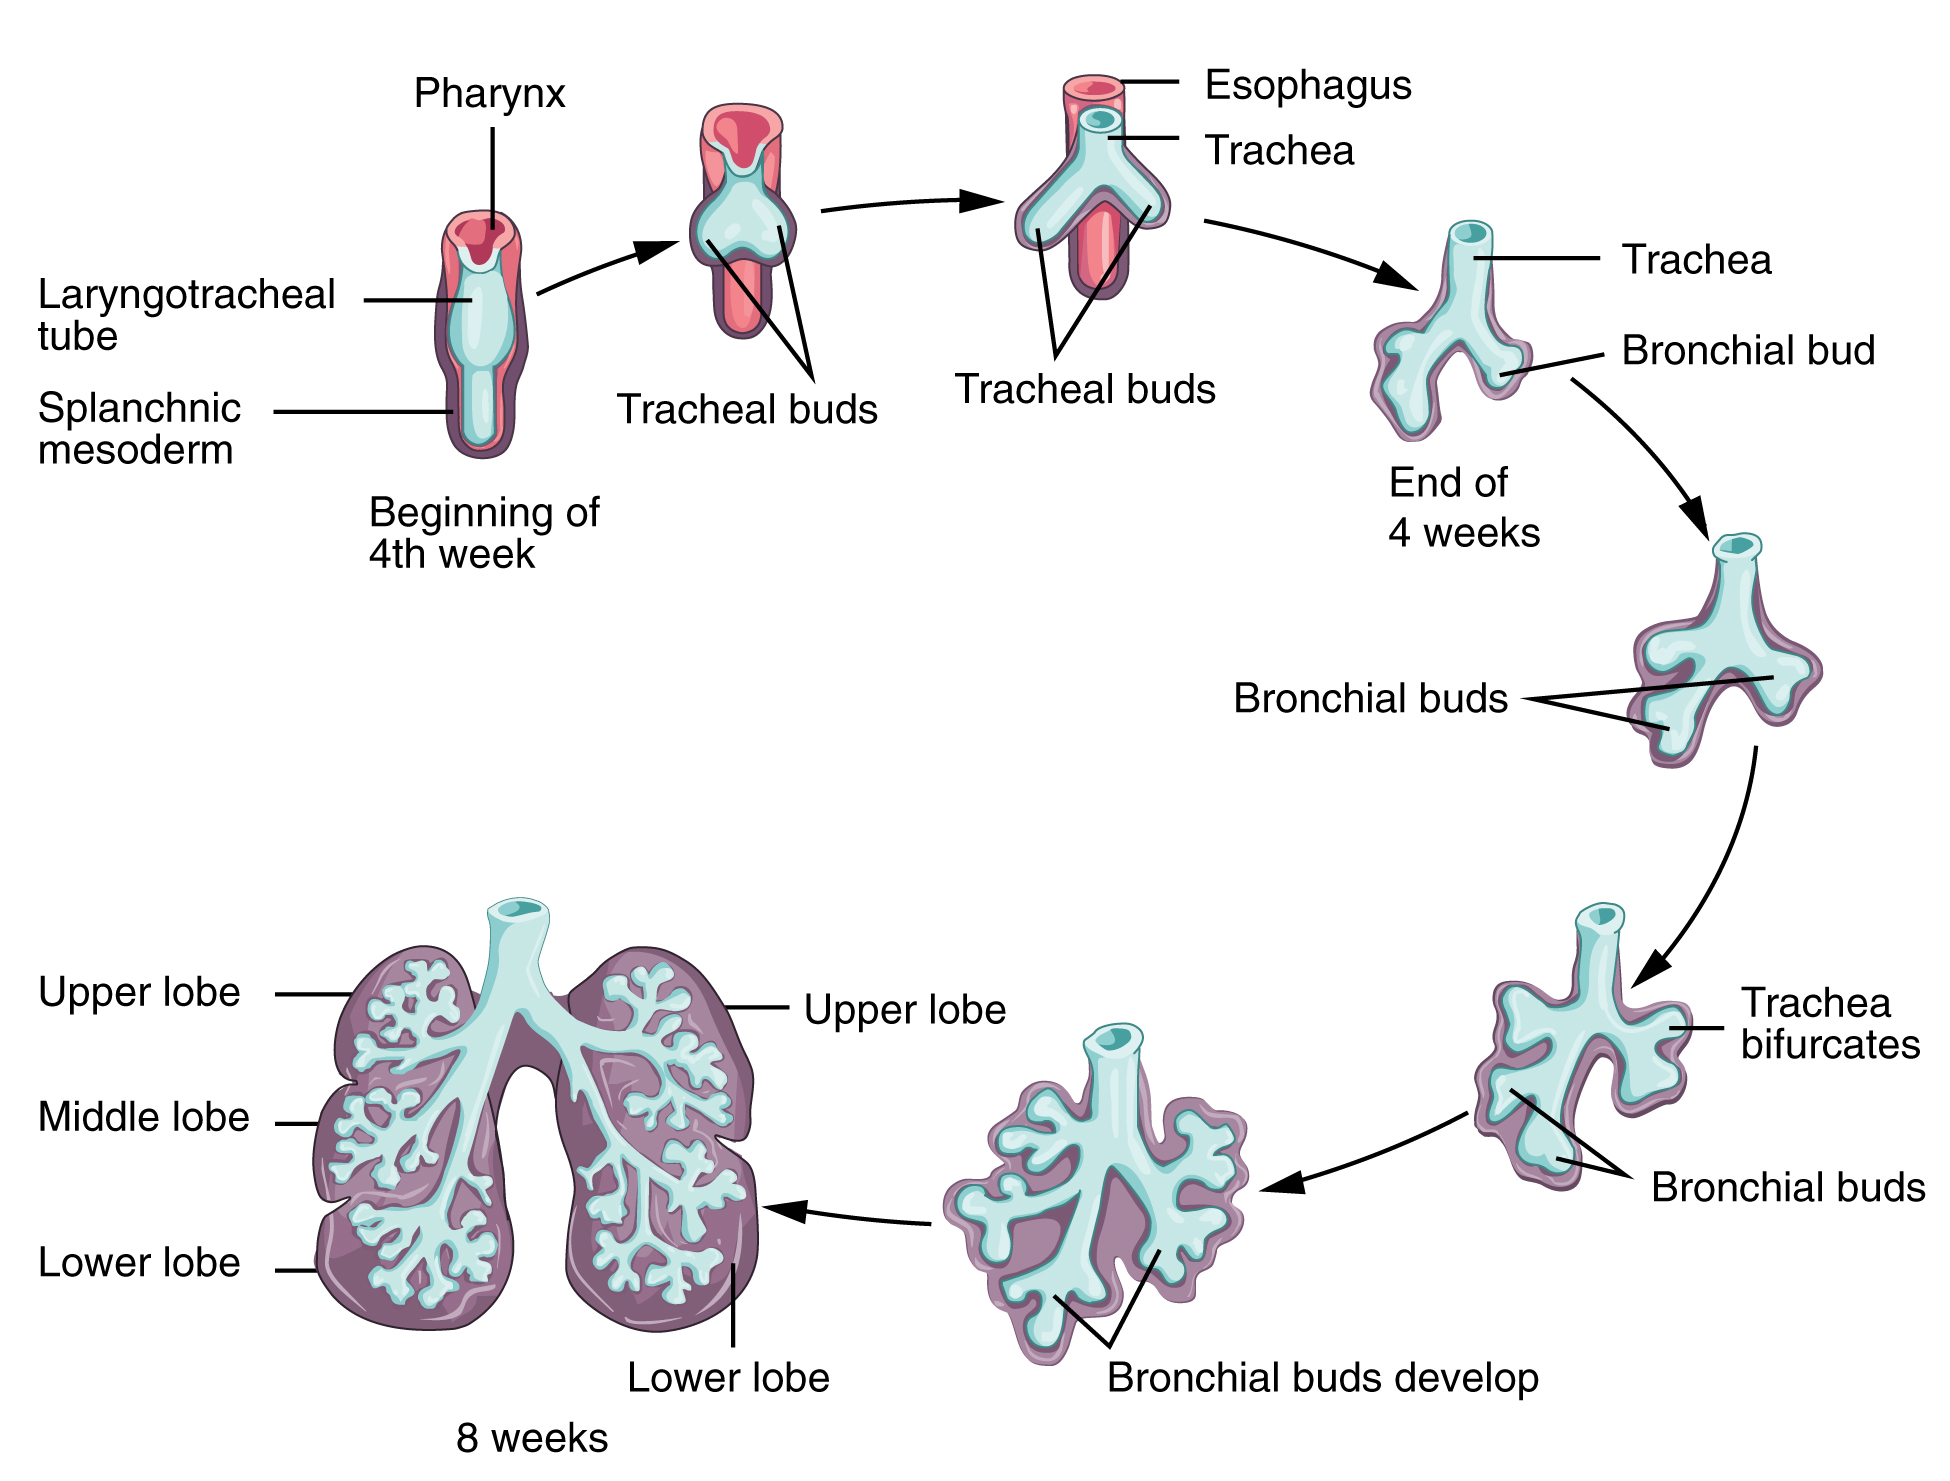 Gastrointestinal Tract and Bronchial System: Embryonic Development